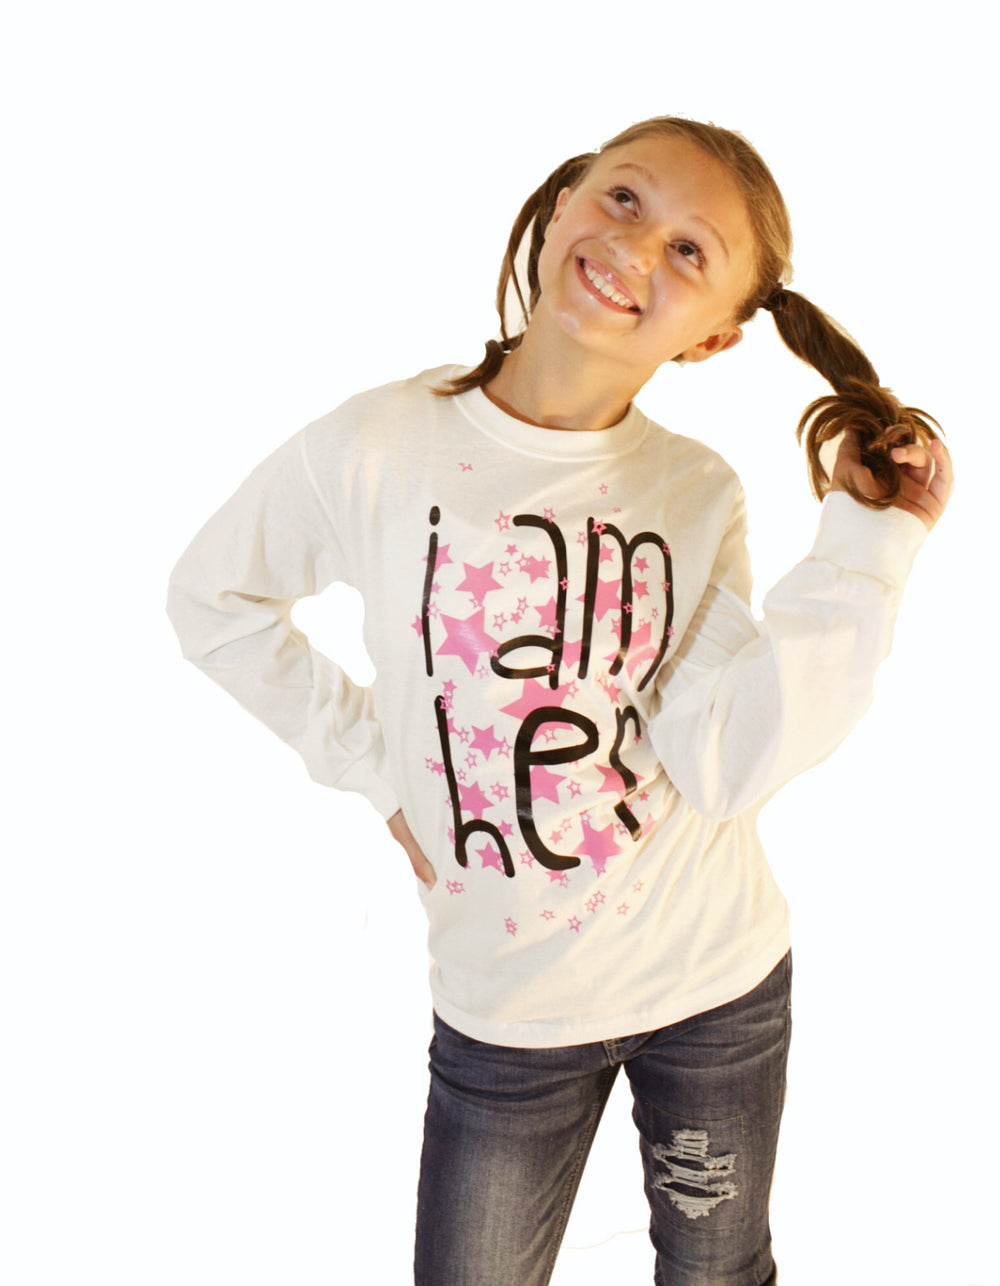 Girl wearing white longsleeve shirts for kids with saying, I AM HER. Girls fashion designed for her because it is never too early or too late for her to know her value and worth